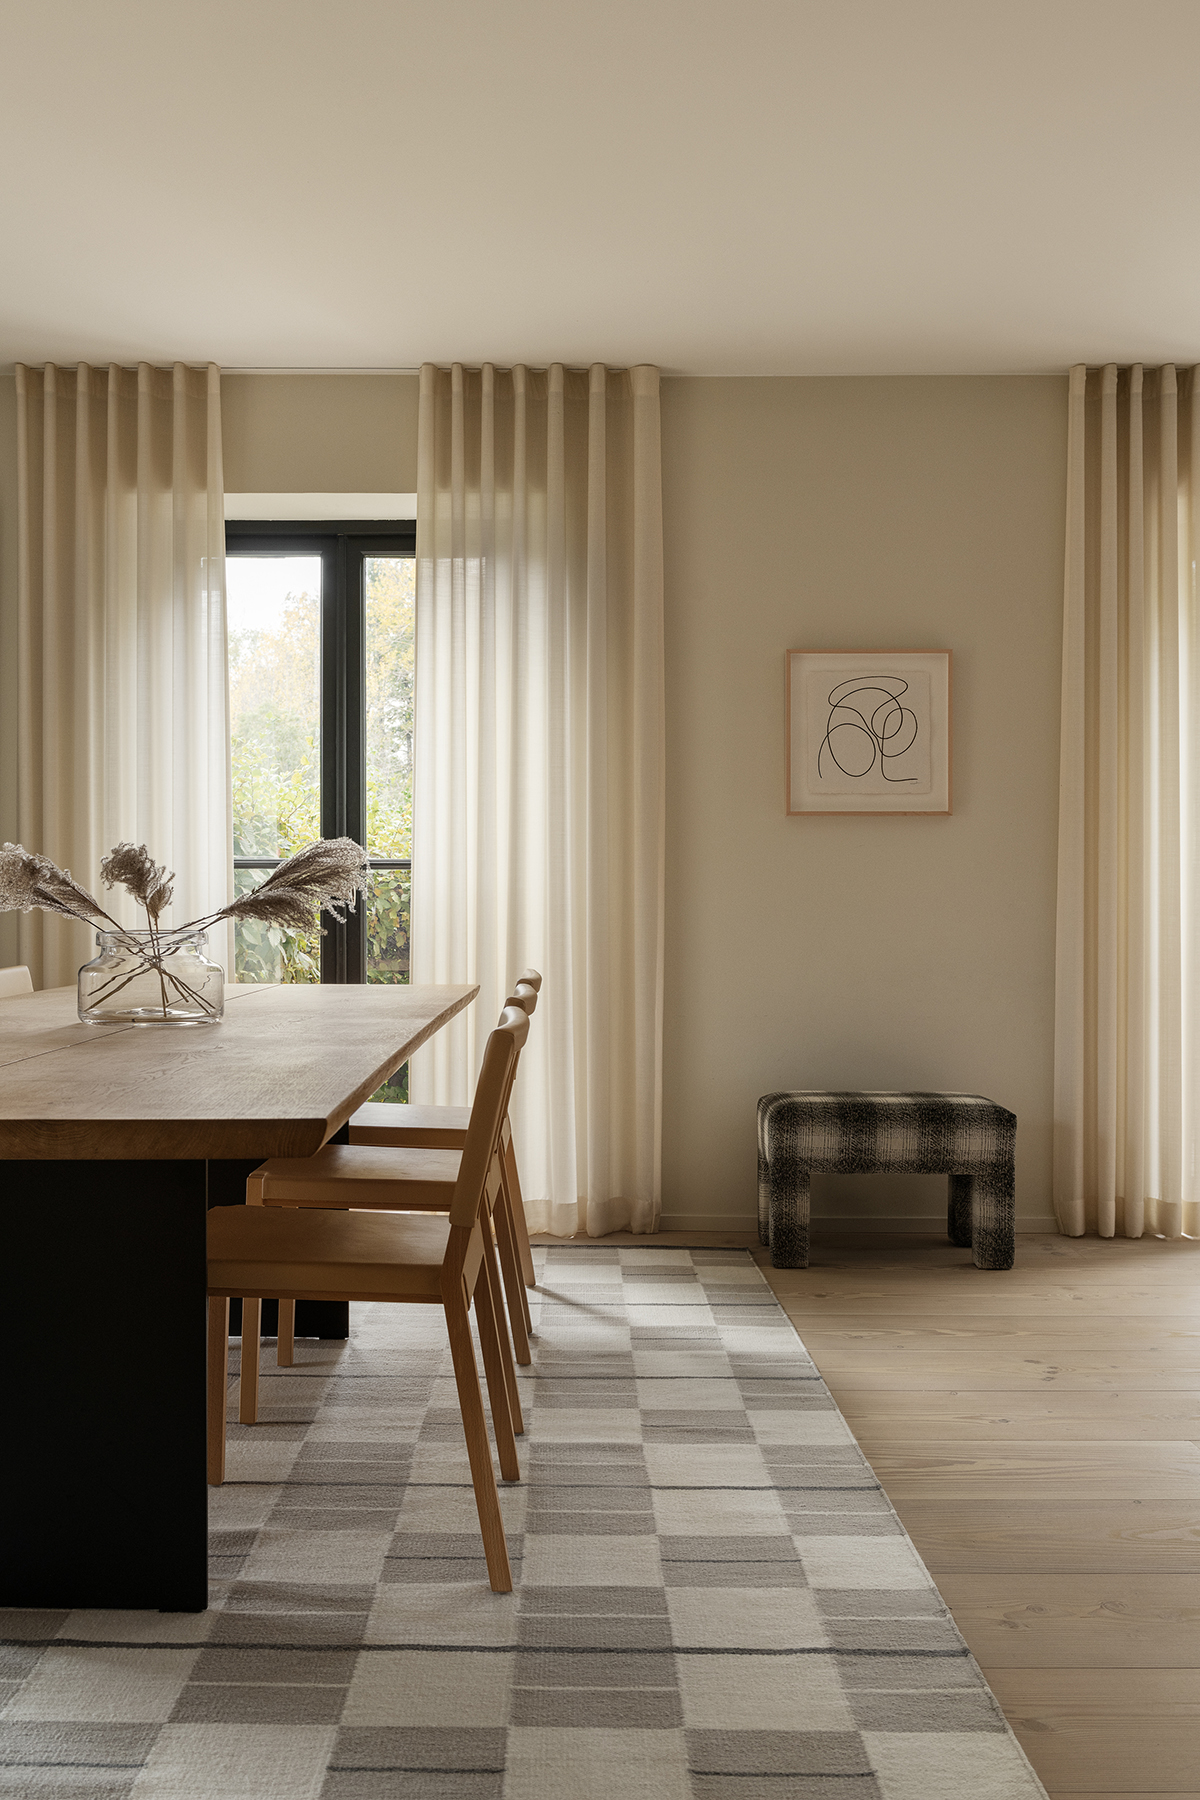 The Båstad rug in Cream displayed in a sunny dining room.